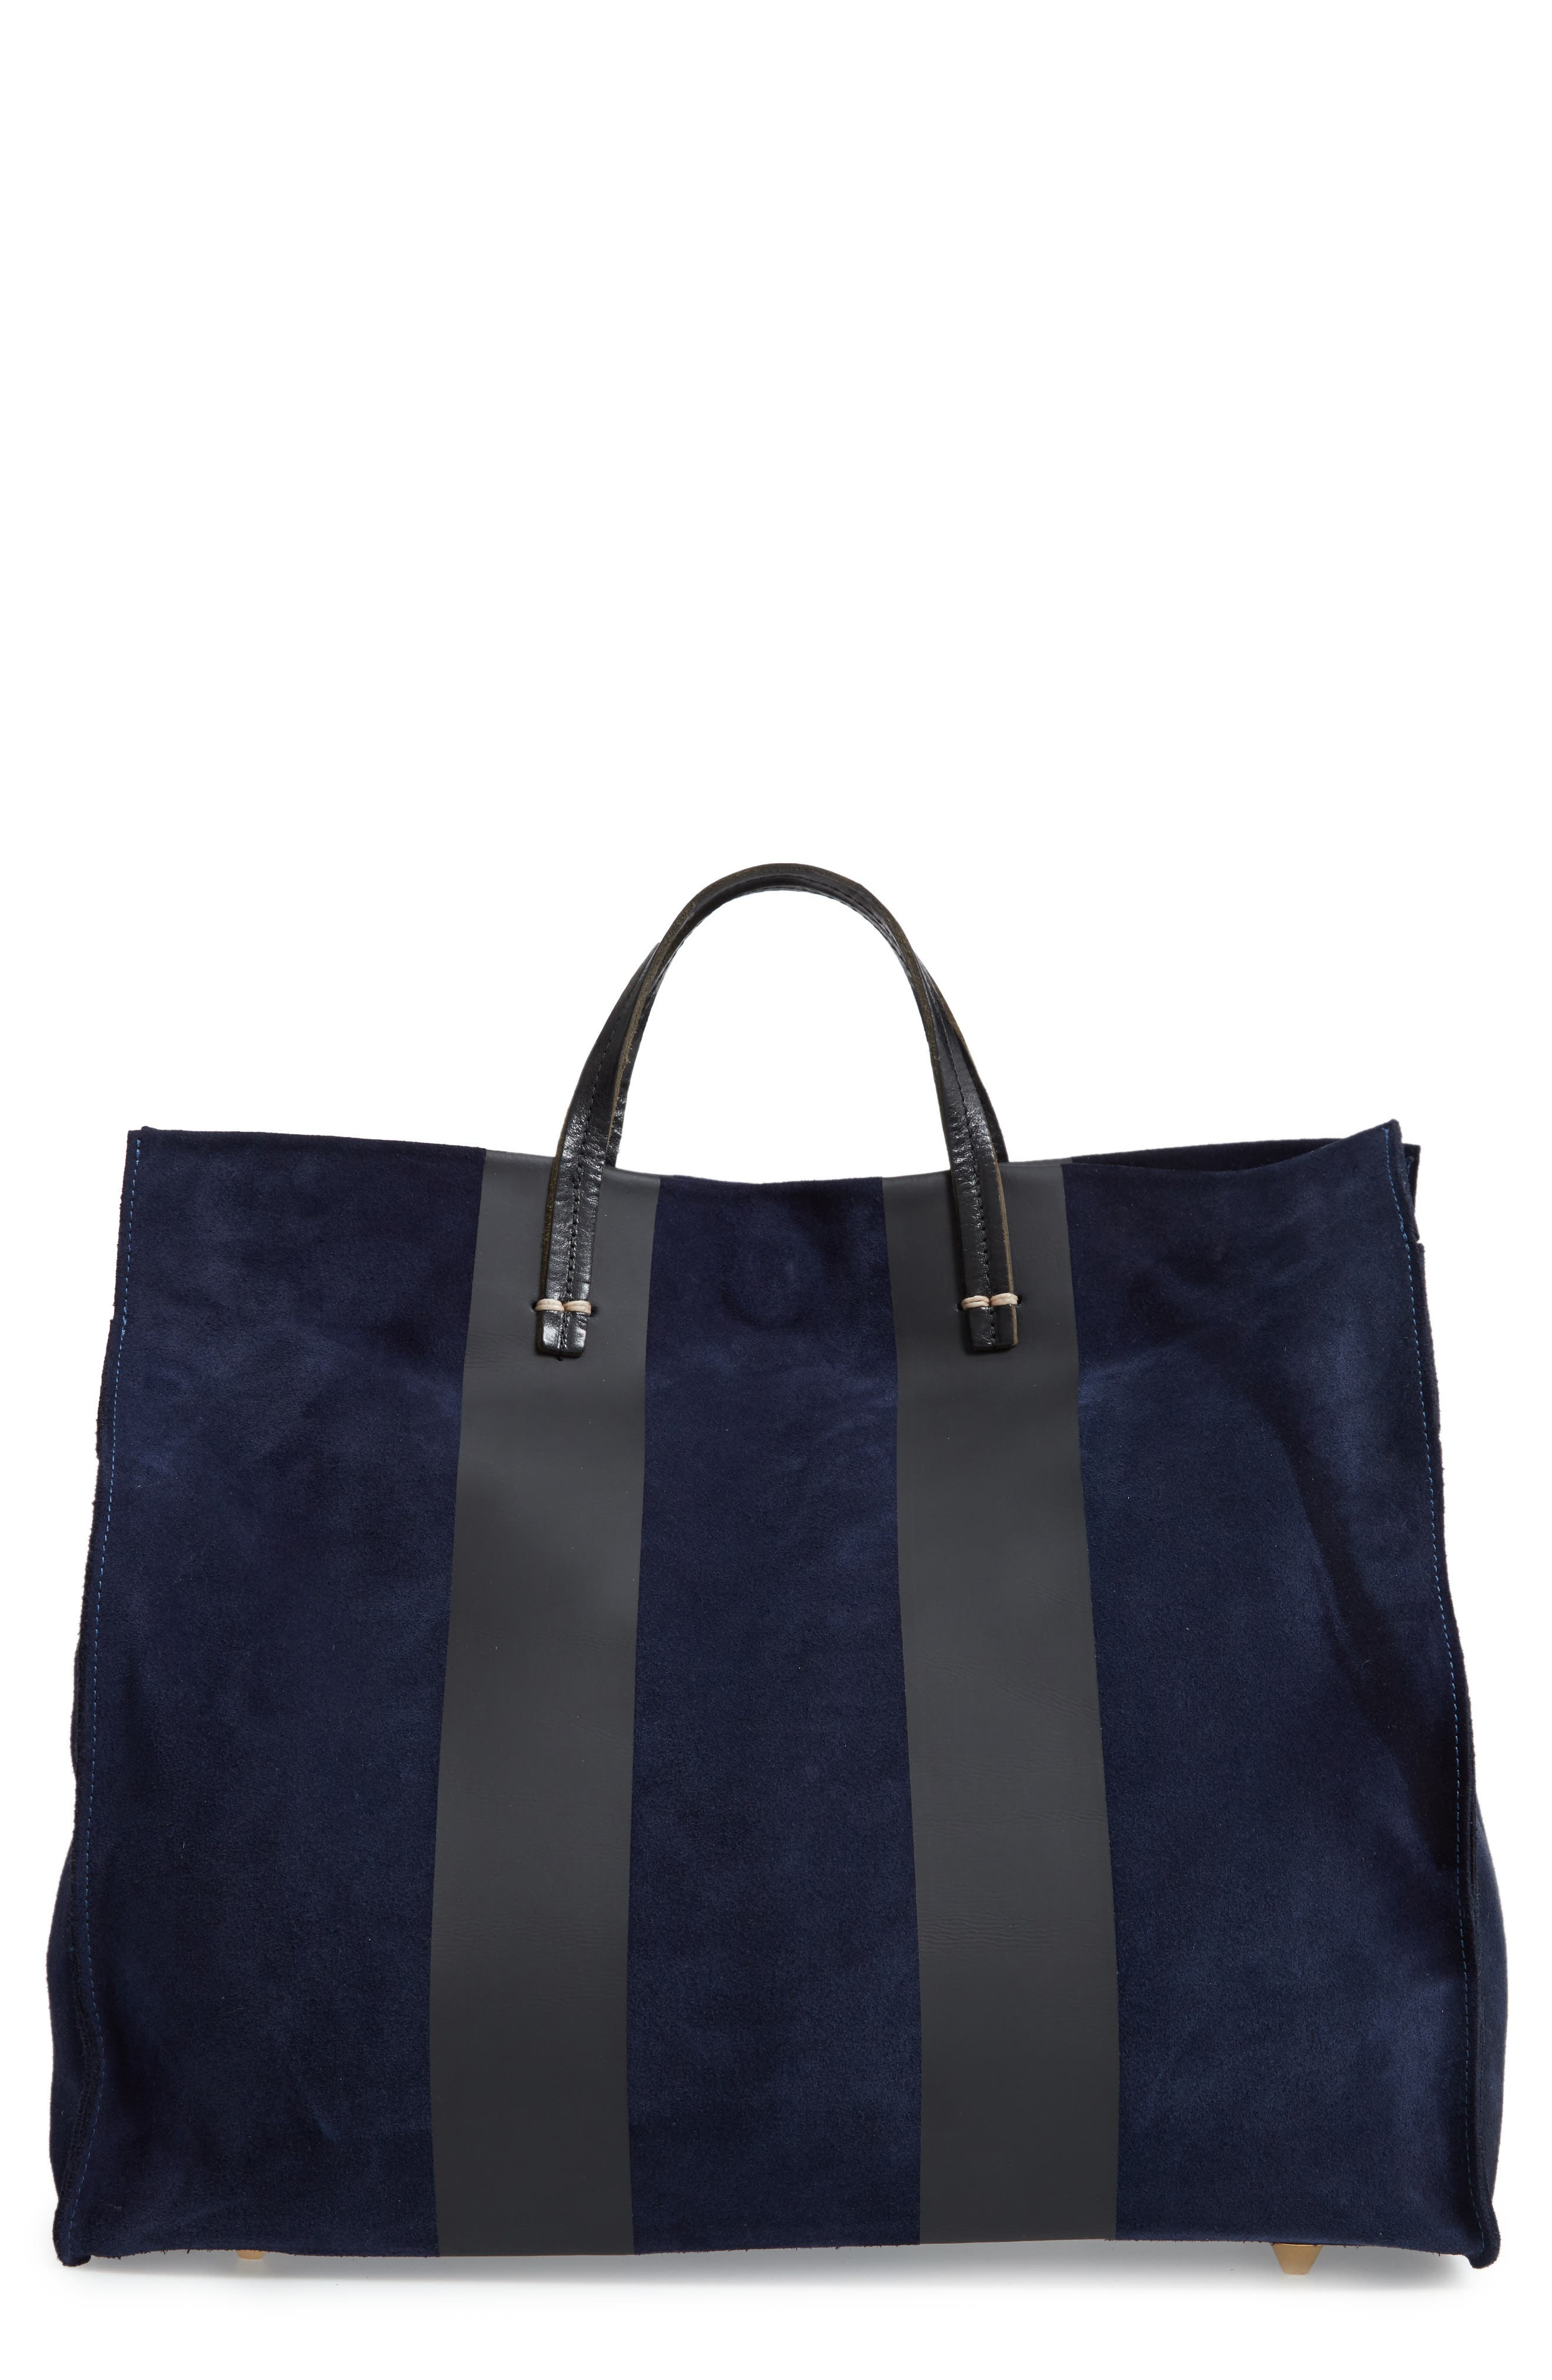 CLARE V Simple Stripe Leather Tote - Blue in Navy Suede Stripe